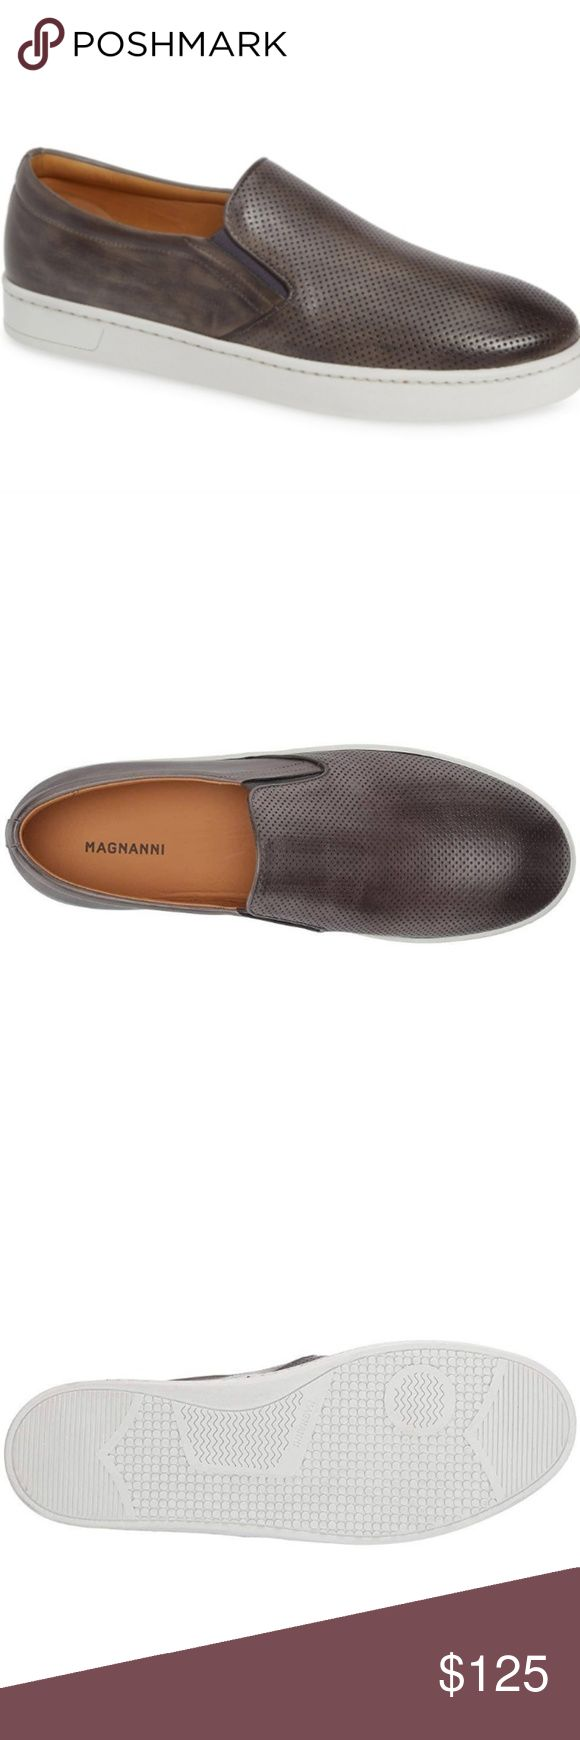 Magnanni Only worn once! Magnanni Shoes Loafers & Slip-Ons